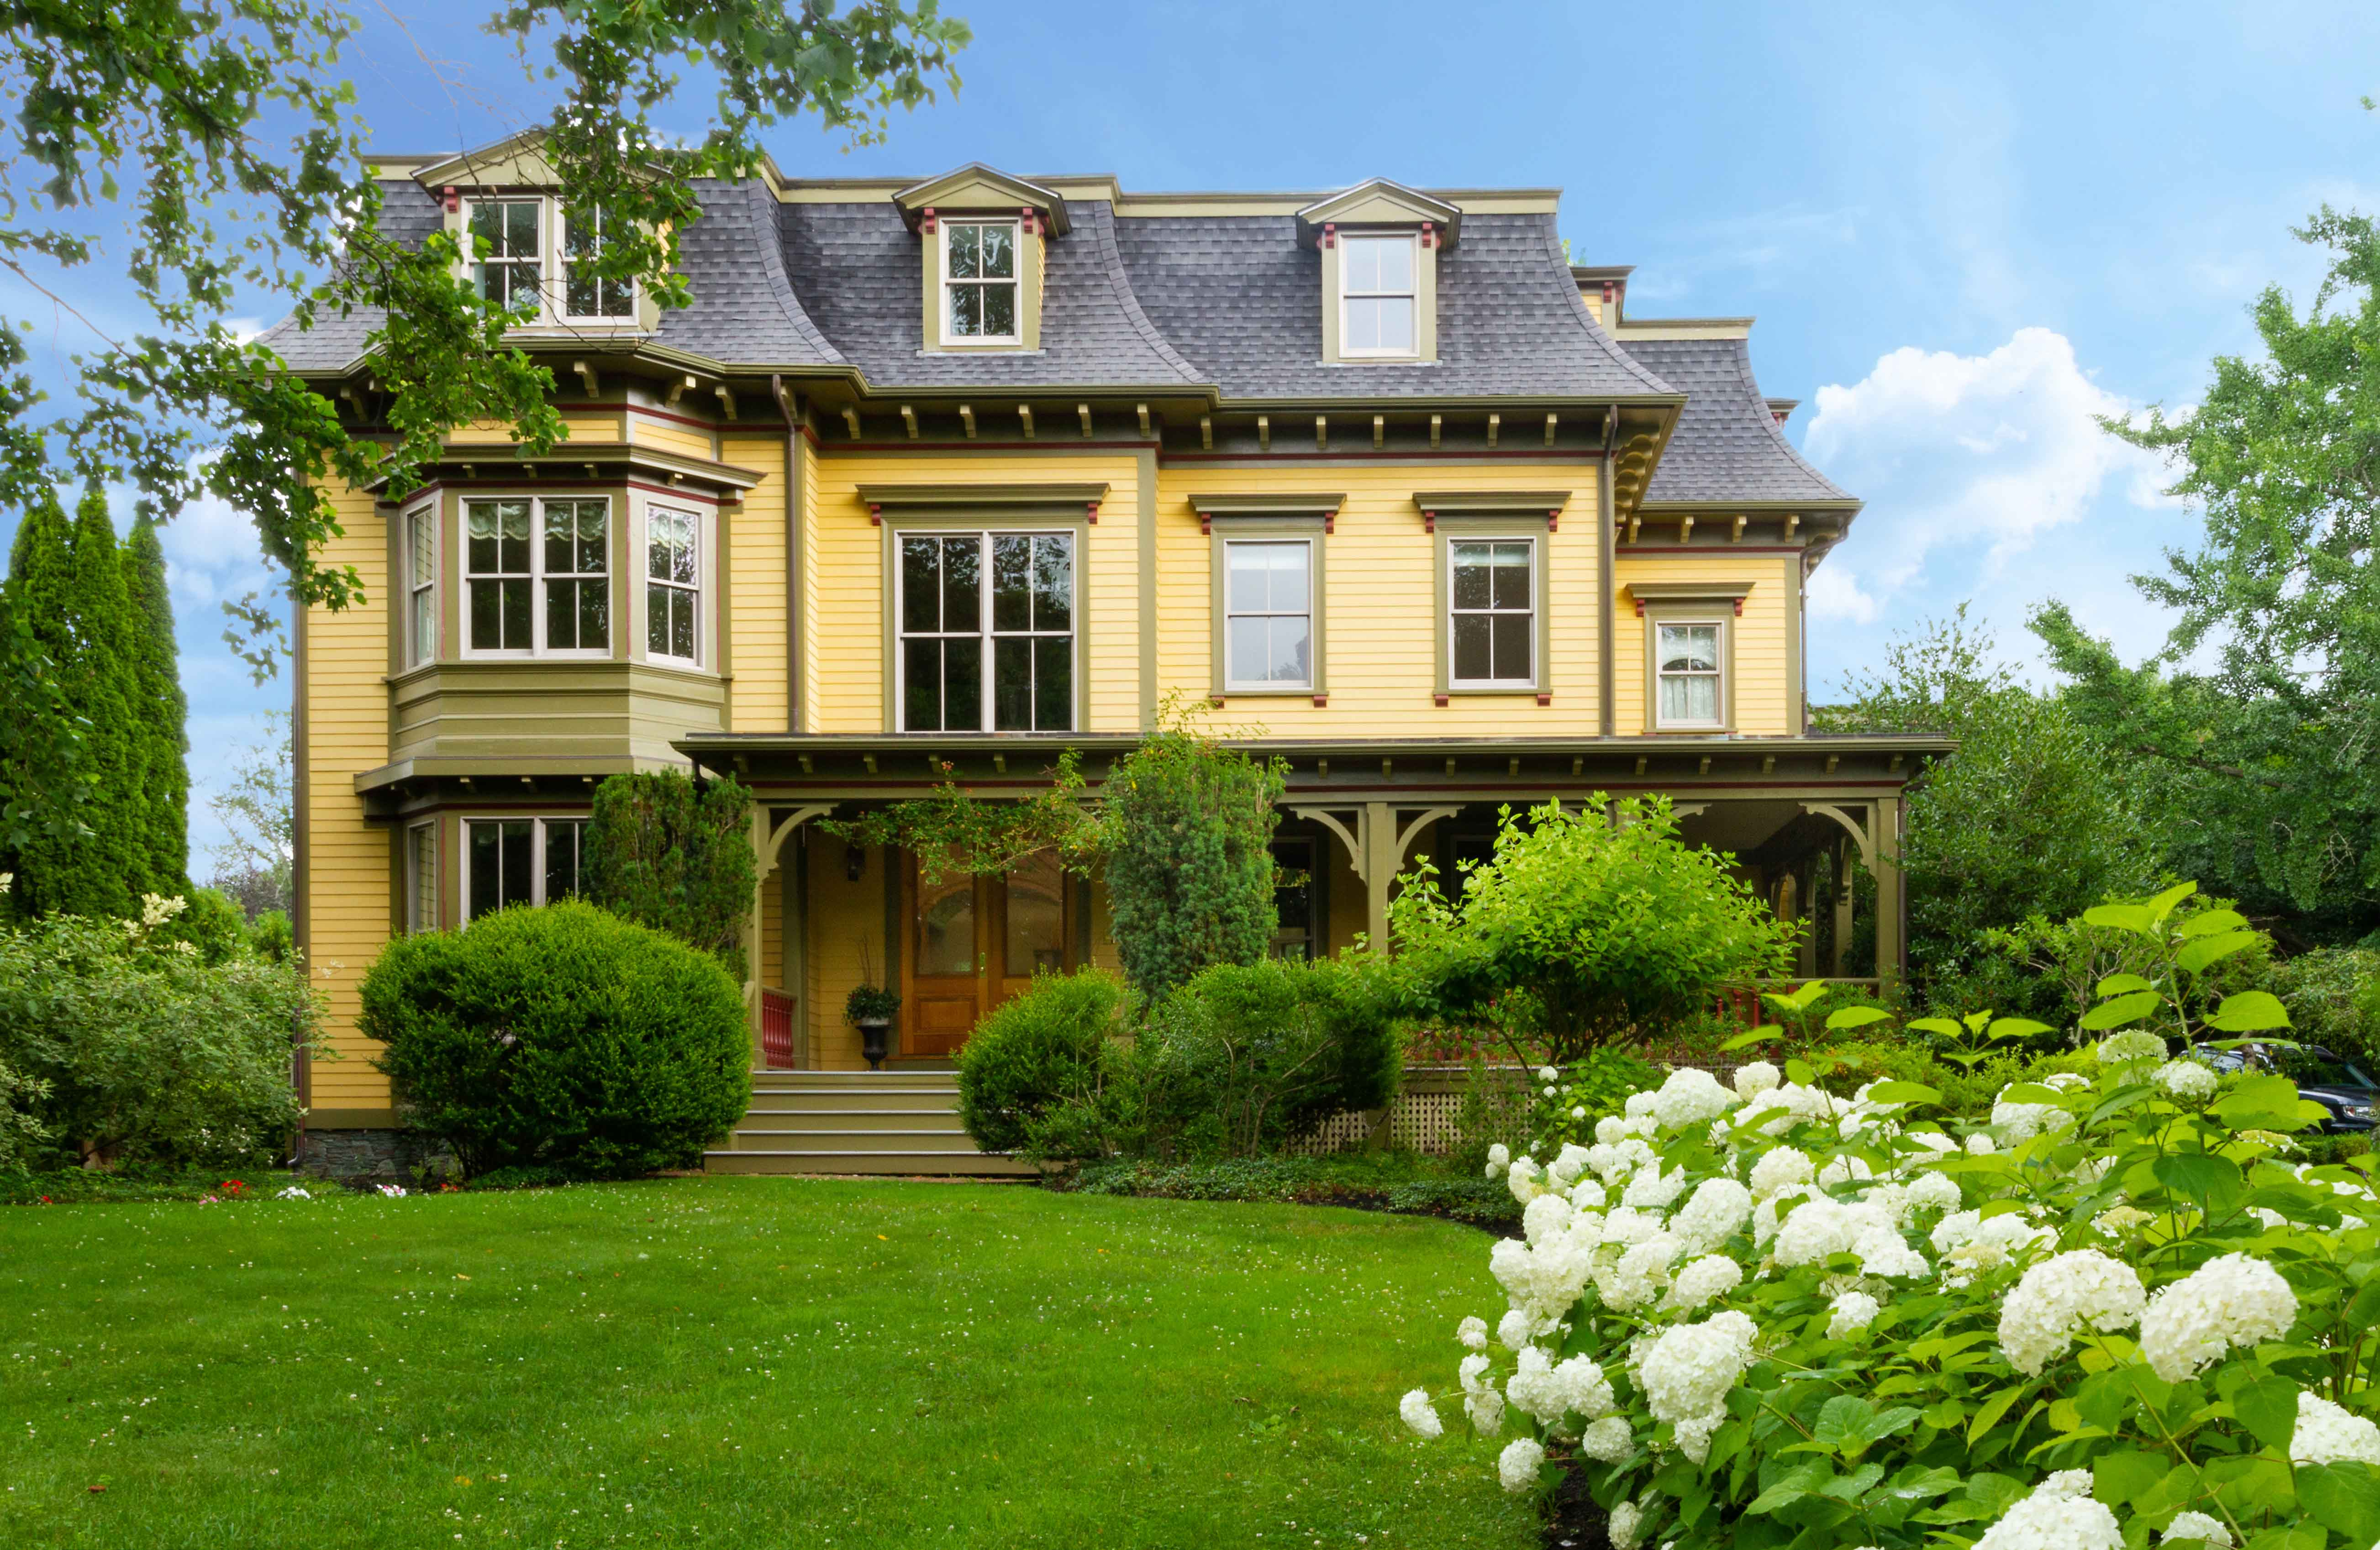 LILA DELMAN REAL ESTATE CONTINUES TO LEAD NEWPORT'S LUXURY MARKET WITH THE SALES OF 104 OLD BEACH ROAD AND 9 CLIFF TERRACE